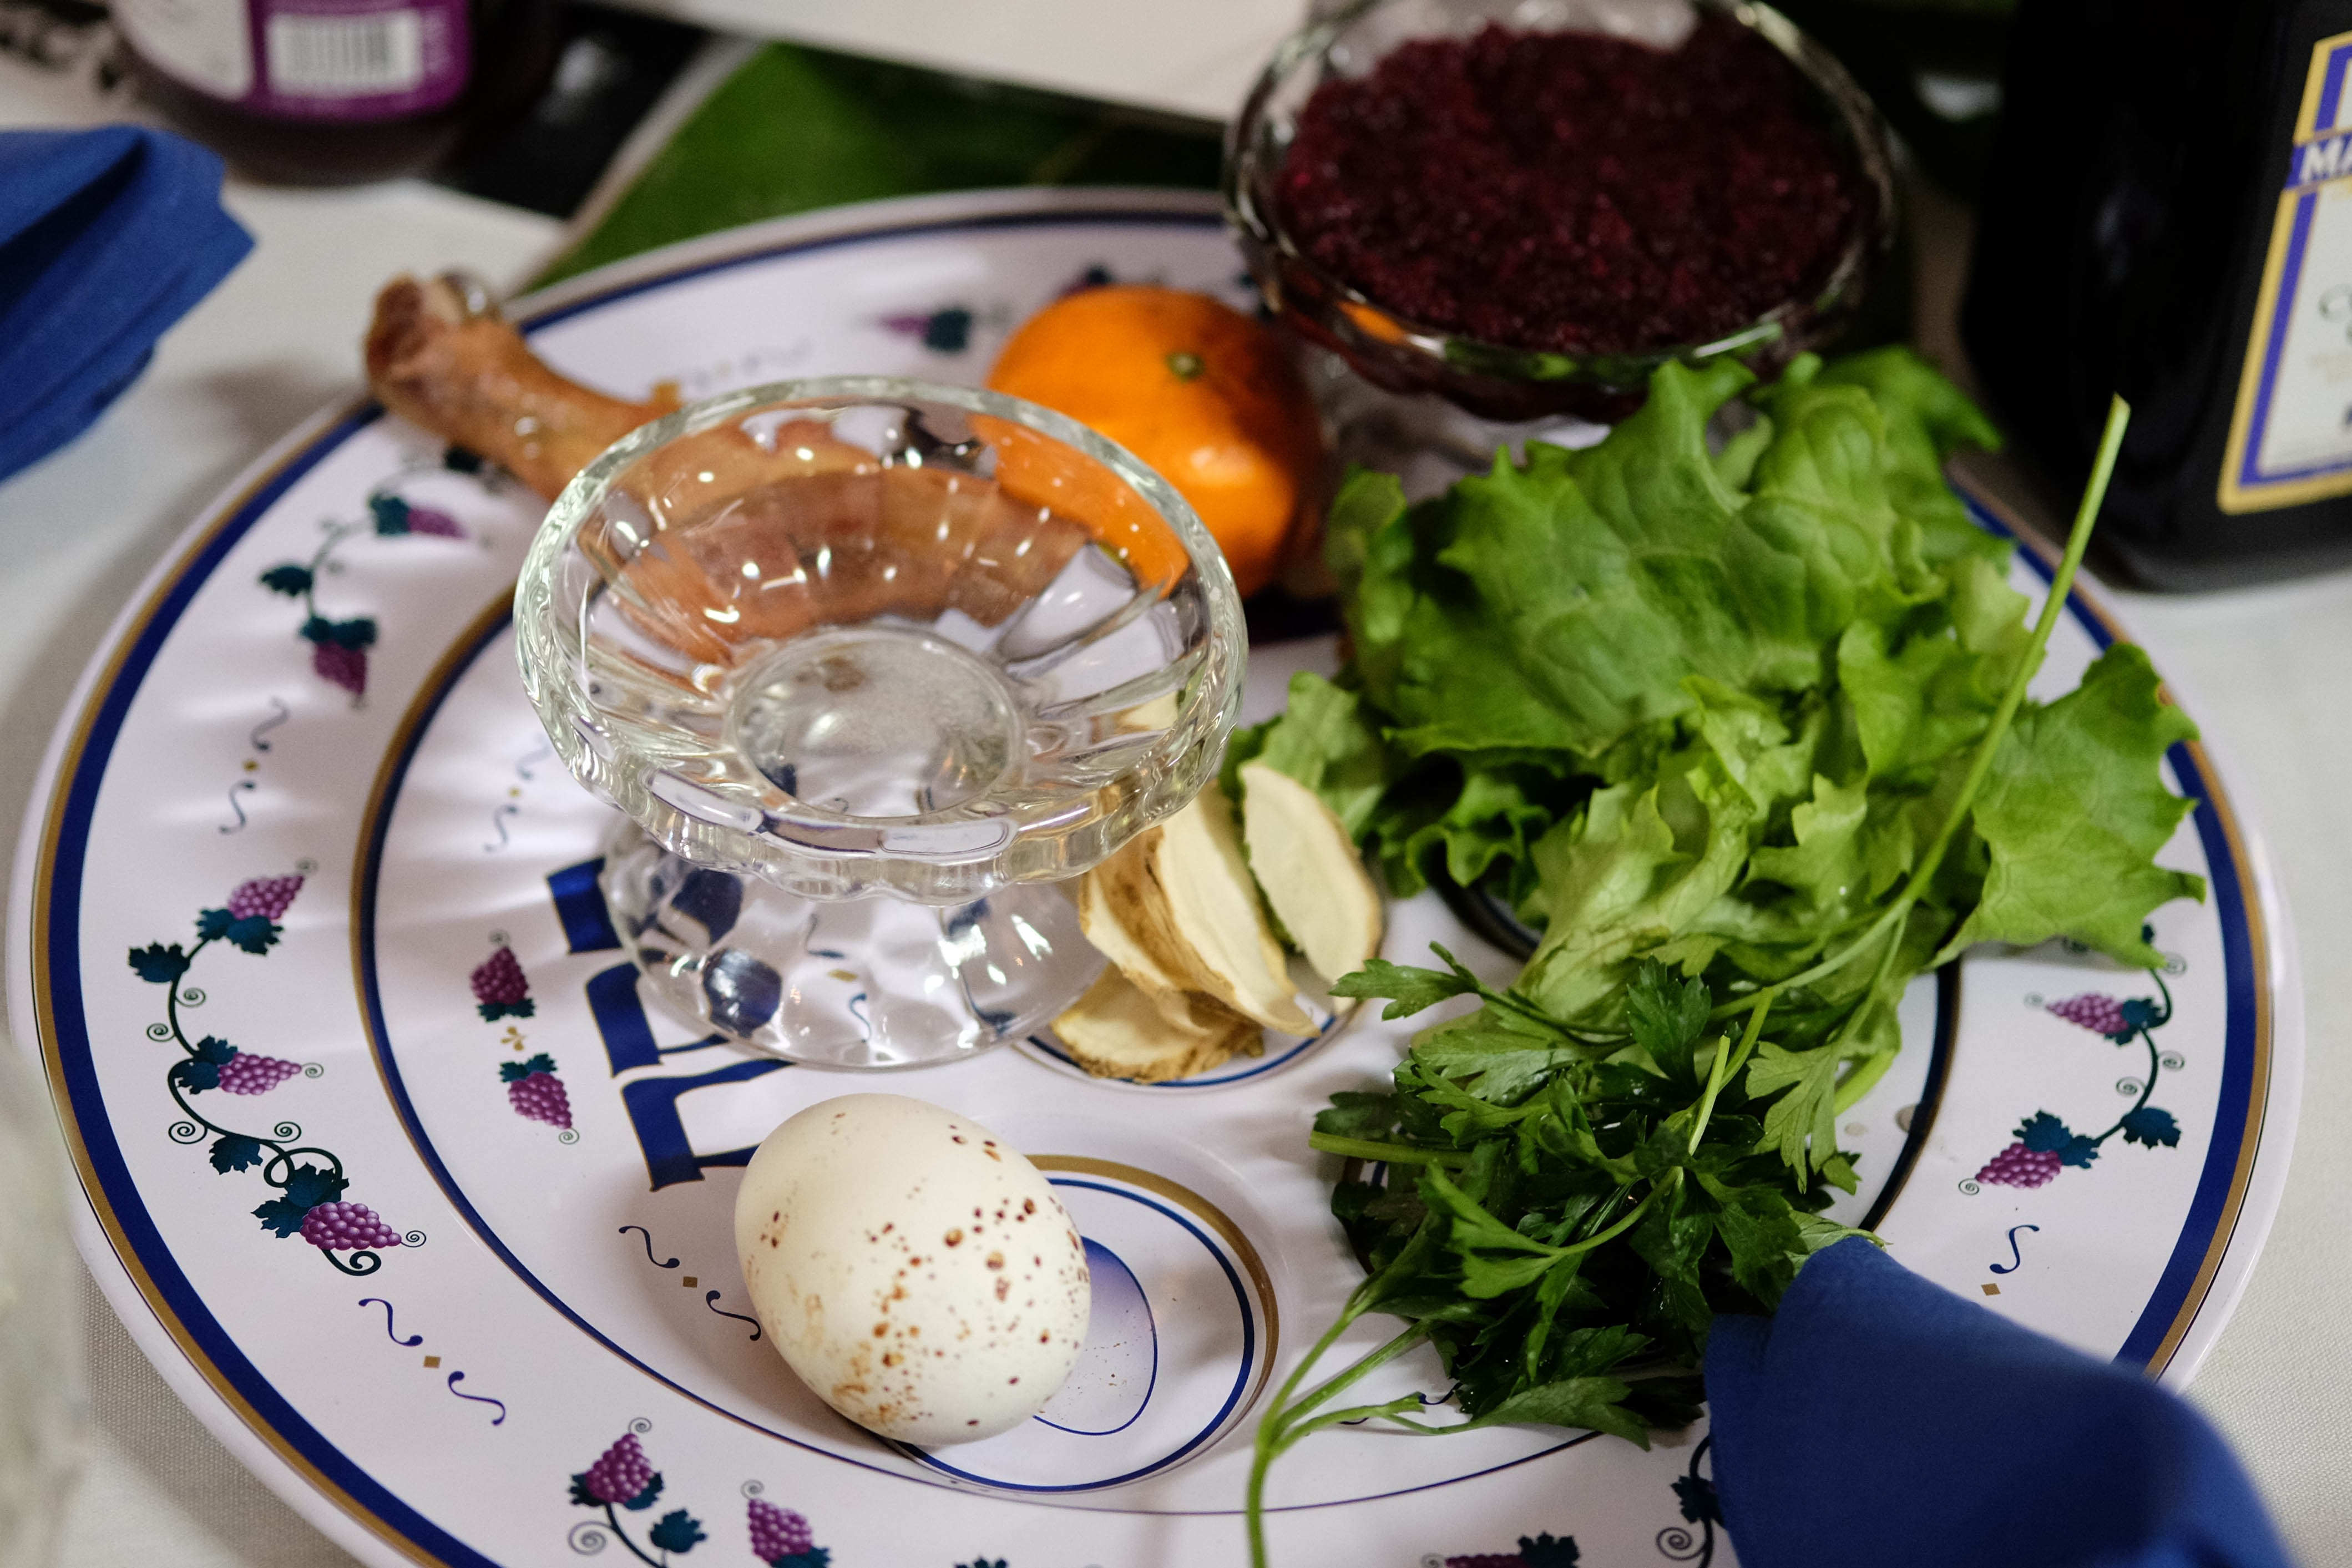 The traditional Passover Seder plate. Seder marks the beginning of the Passover week and commemorates the ancient exodus of Jews from Egypt. - JACKIE KRUSZEWSKI